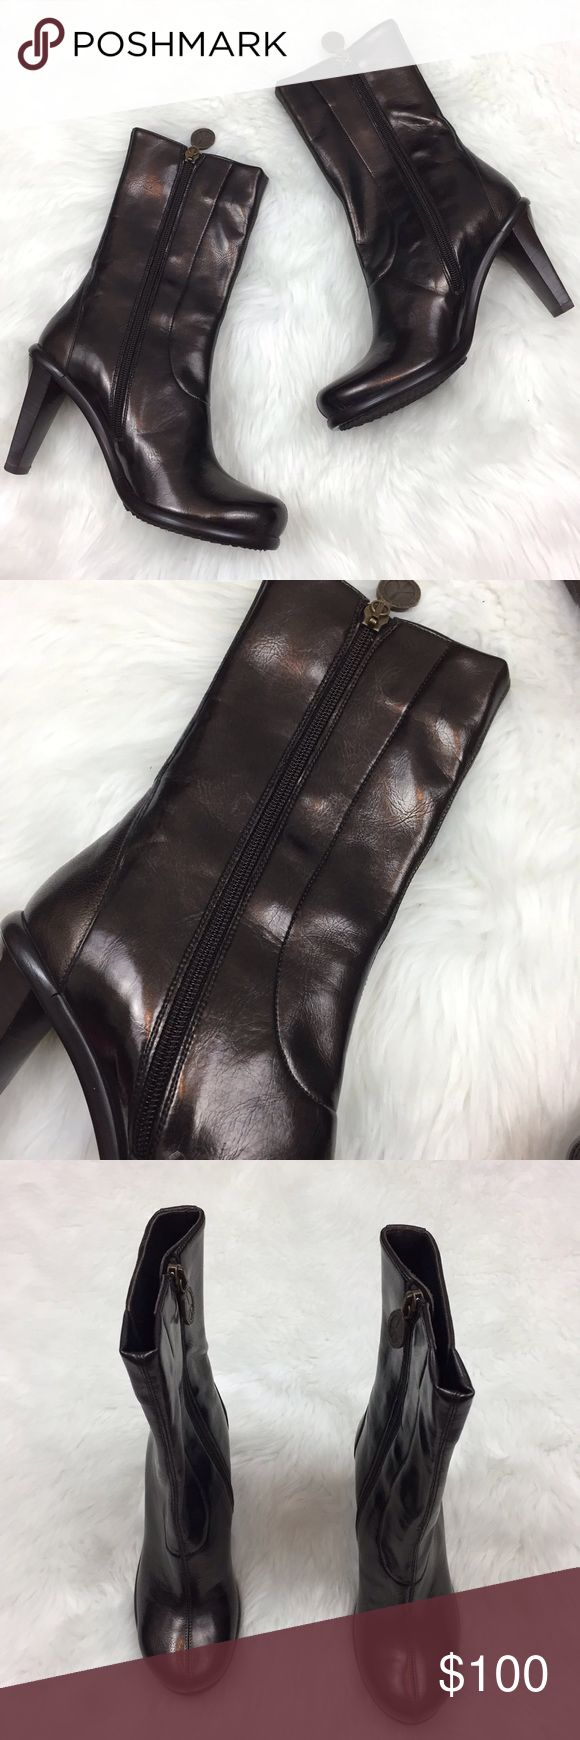 🇺🇸Donald J. PLINER Brown Metallic Heeled Boots Donald J. PLINER Women's Brown Metallic Zip-up Heeled Boots Size 6.5  This has been gently worn with no major flaws.  This comes with the original box. Please refer to photos for more details. Donald J. Pliner Shoes Heeled Boots